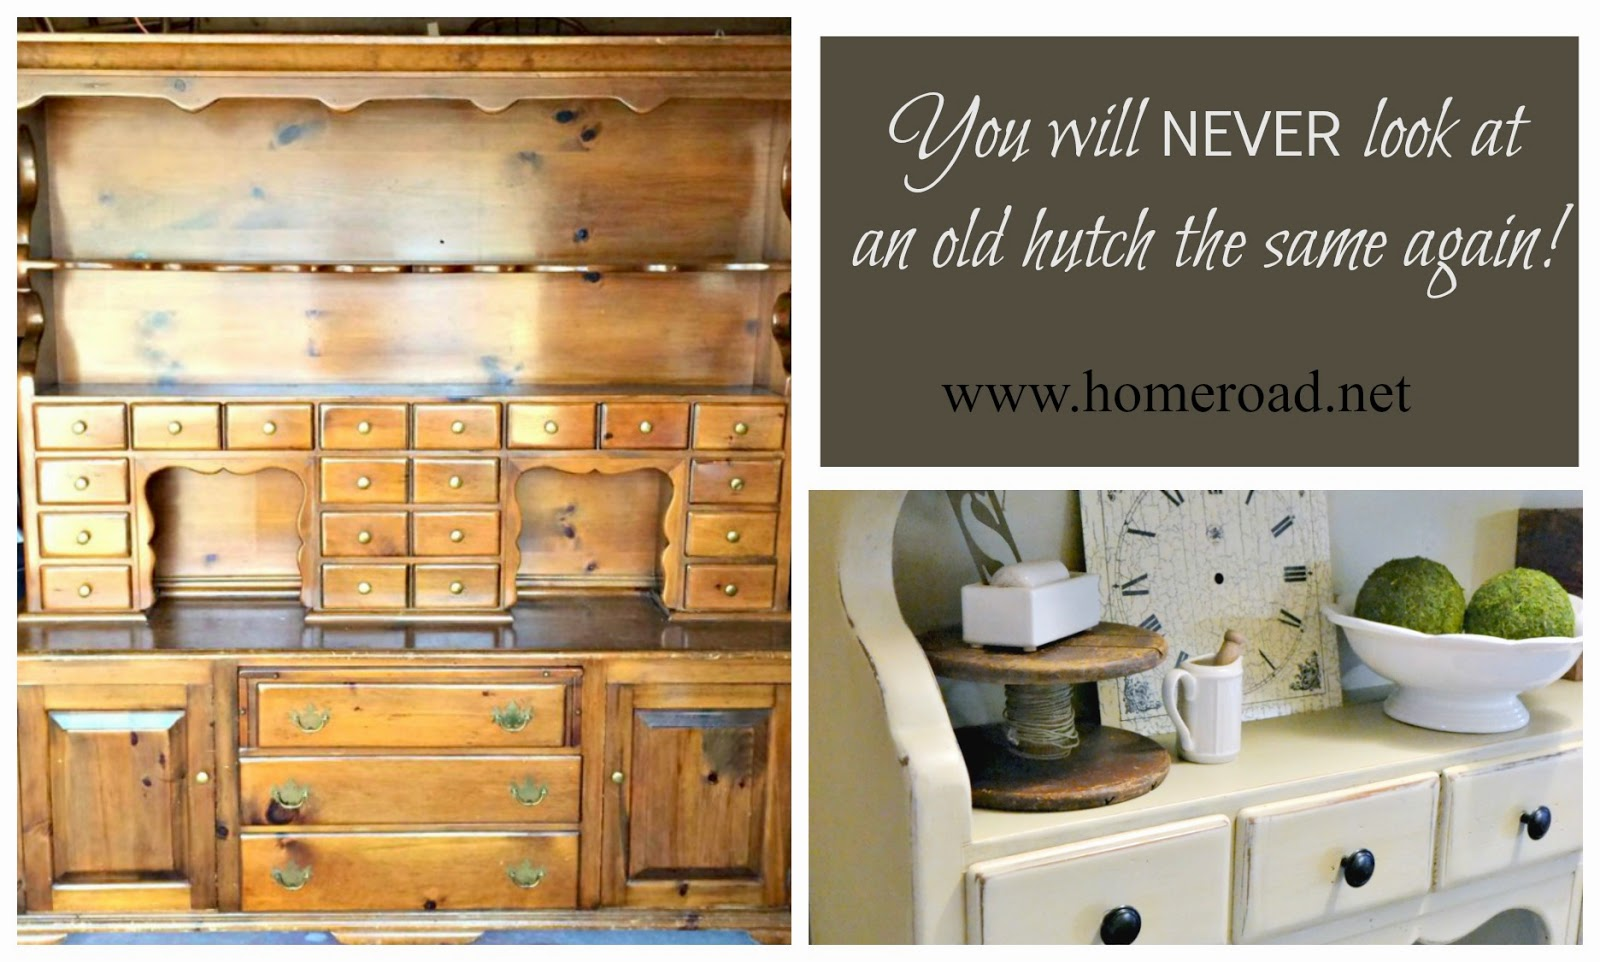 old hutch transformation www.homeroad.net